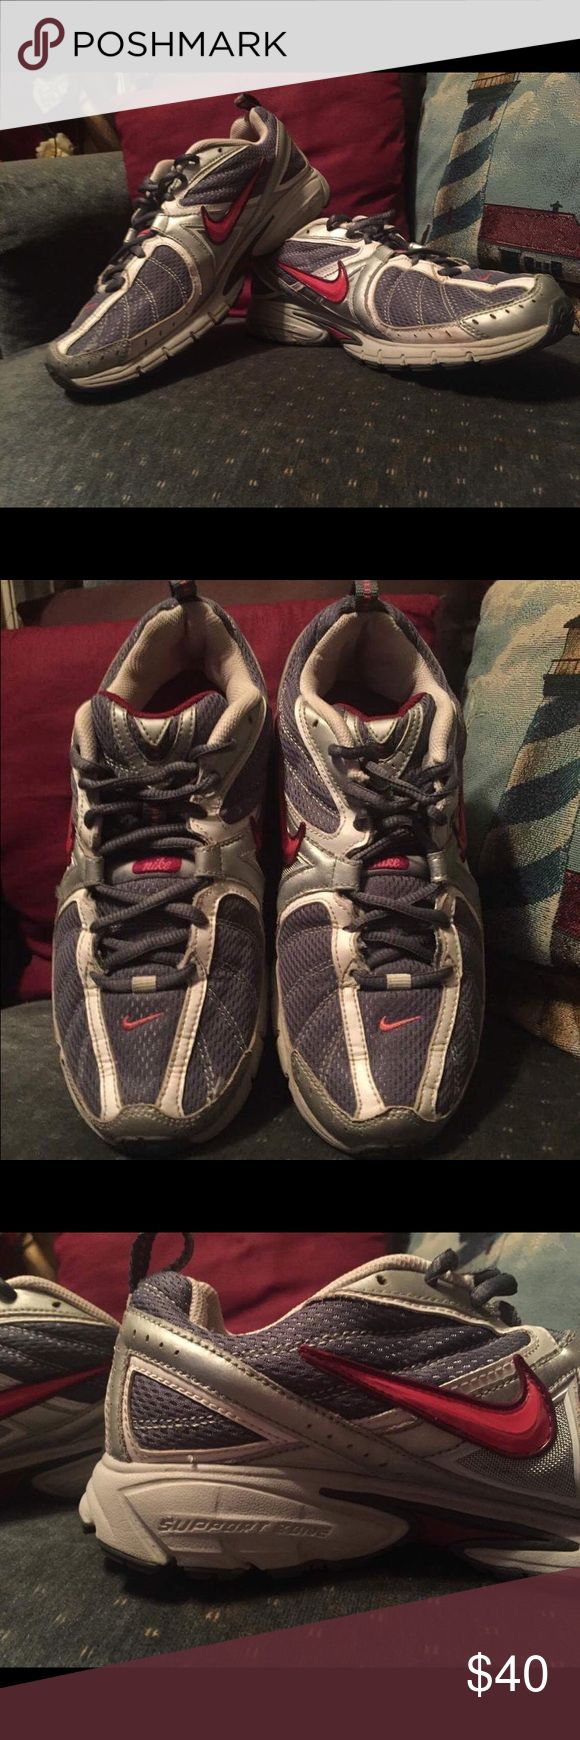 NIKE* Ladies running shoes sz9.5 EUC* Ladies running shoes, sz9.5 by NIKE*. Worn very little. Great shoes! Nike Shoes Athletic Shoes